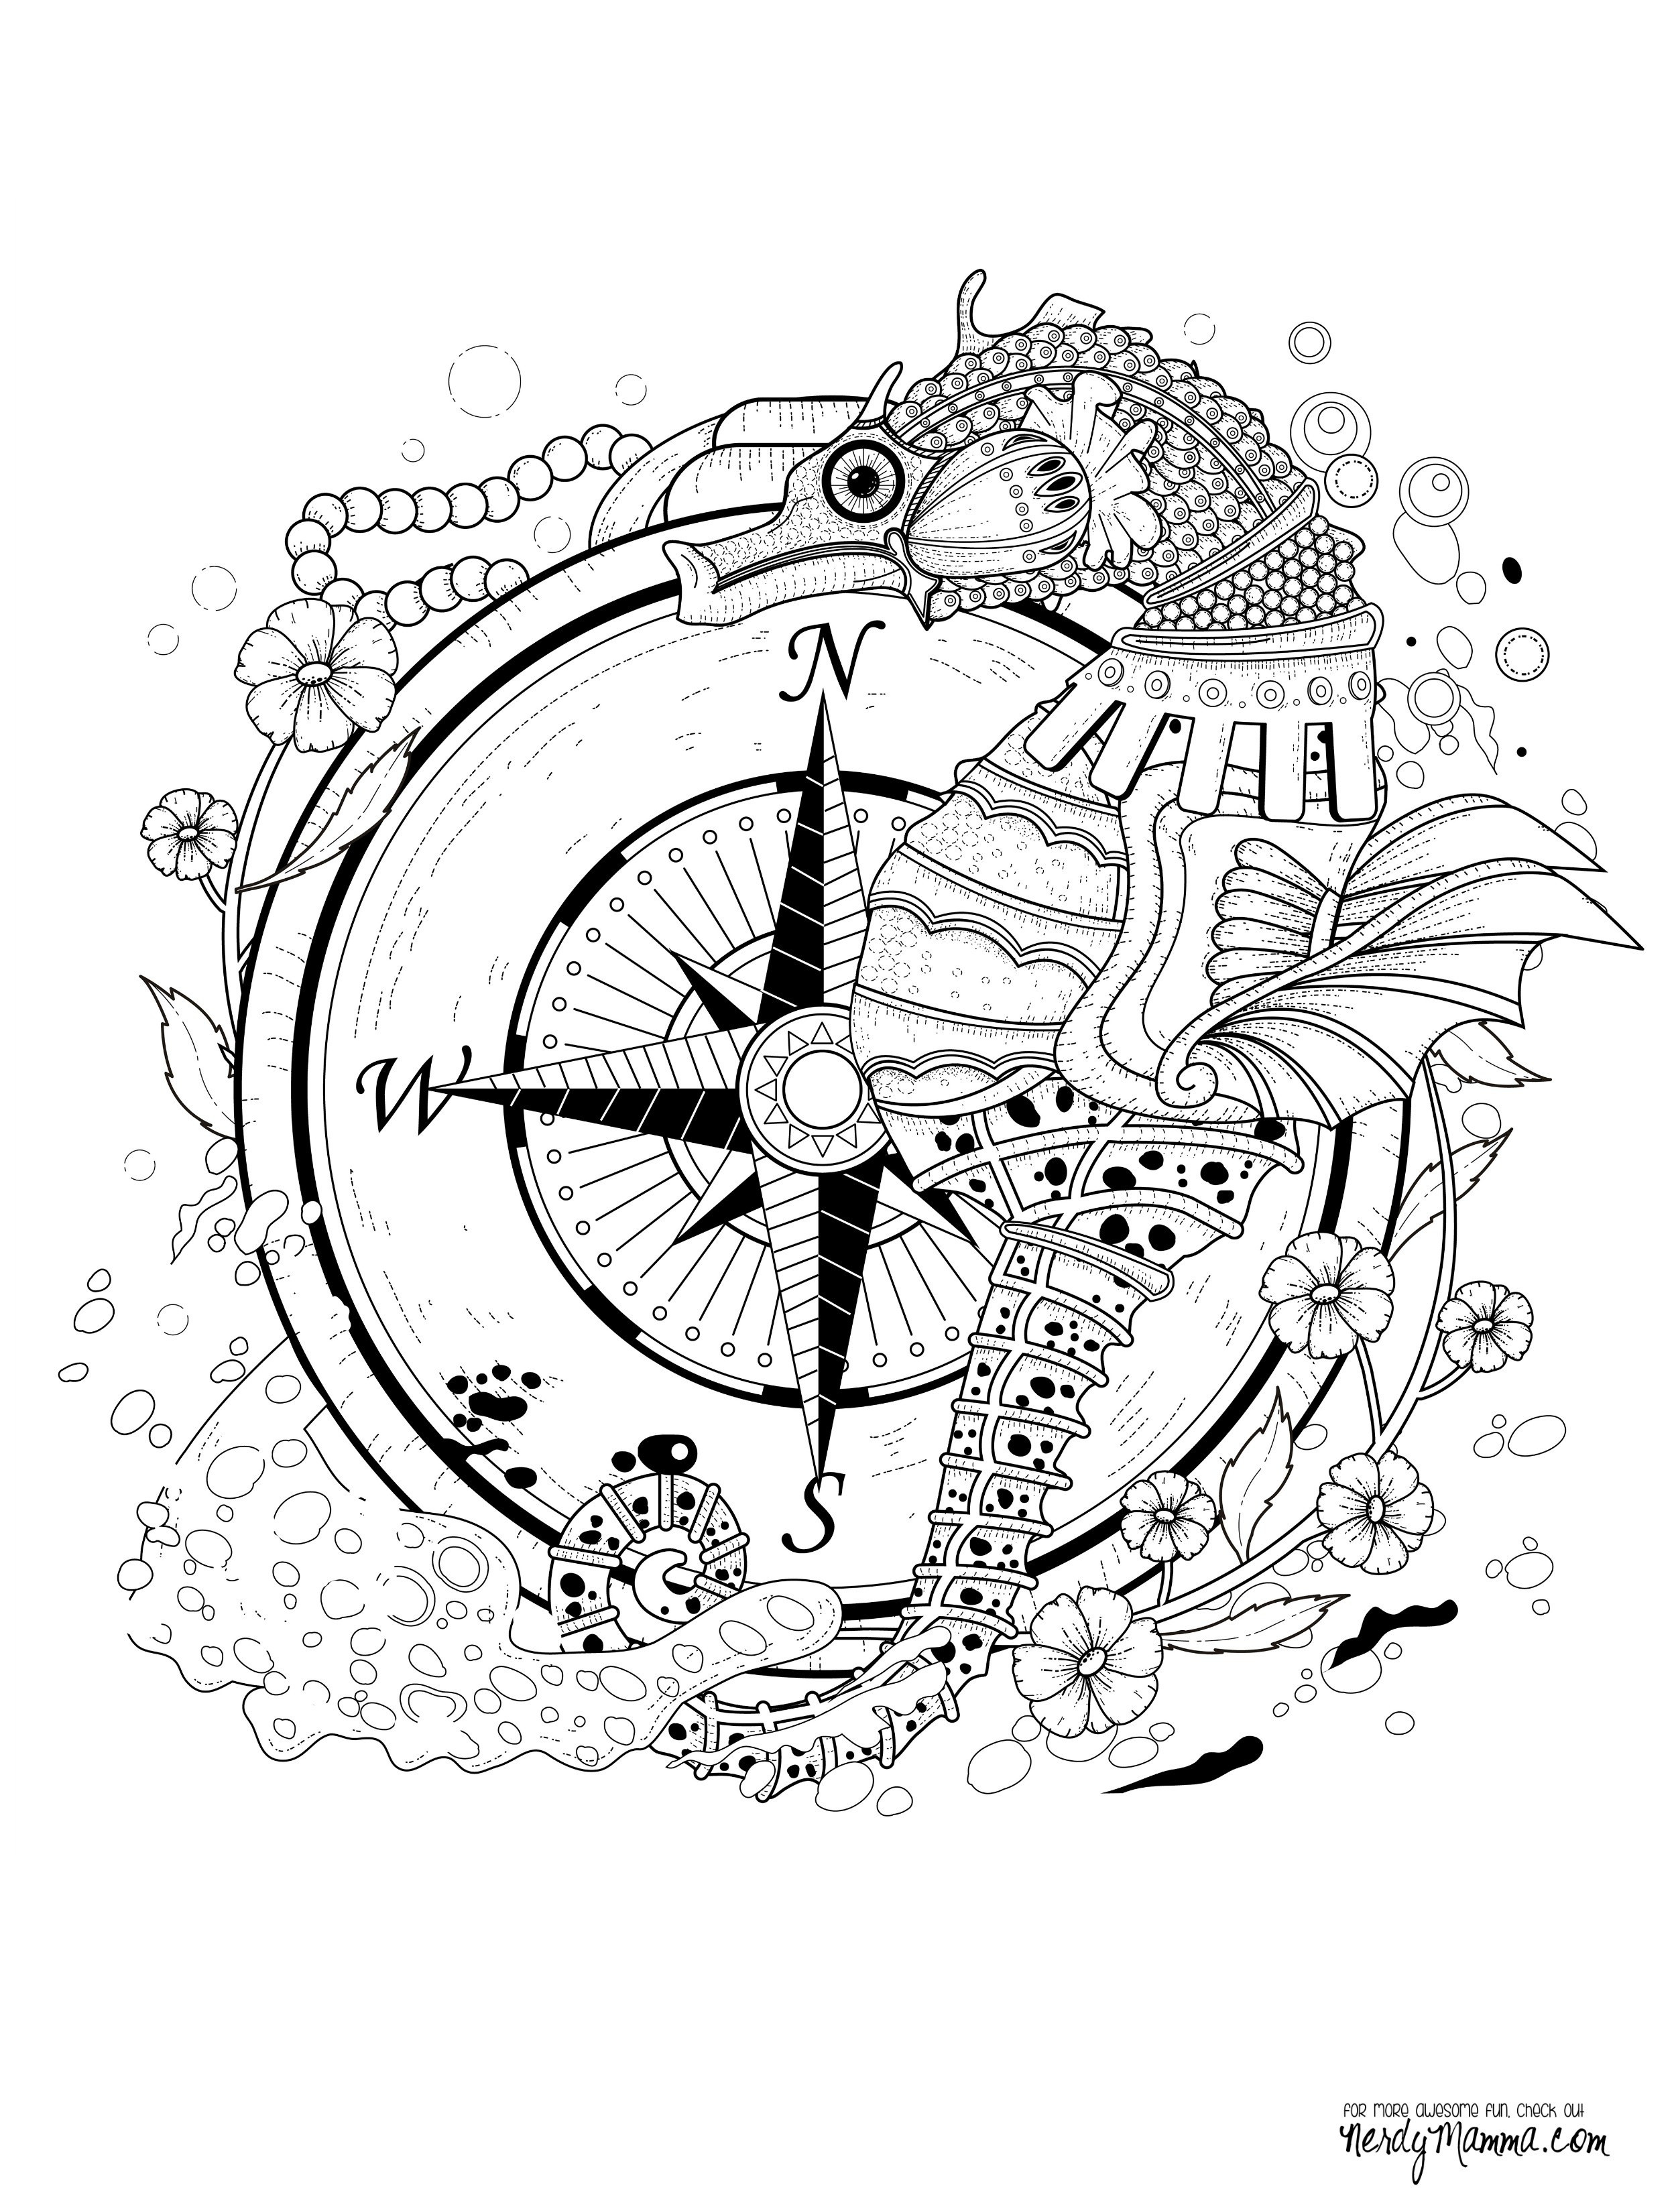 Seahorse Coloring Pages For Adults  11 Free Printable Adult Coloring Pages